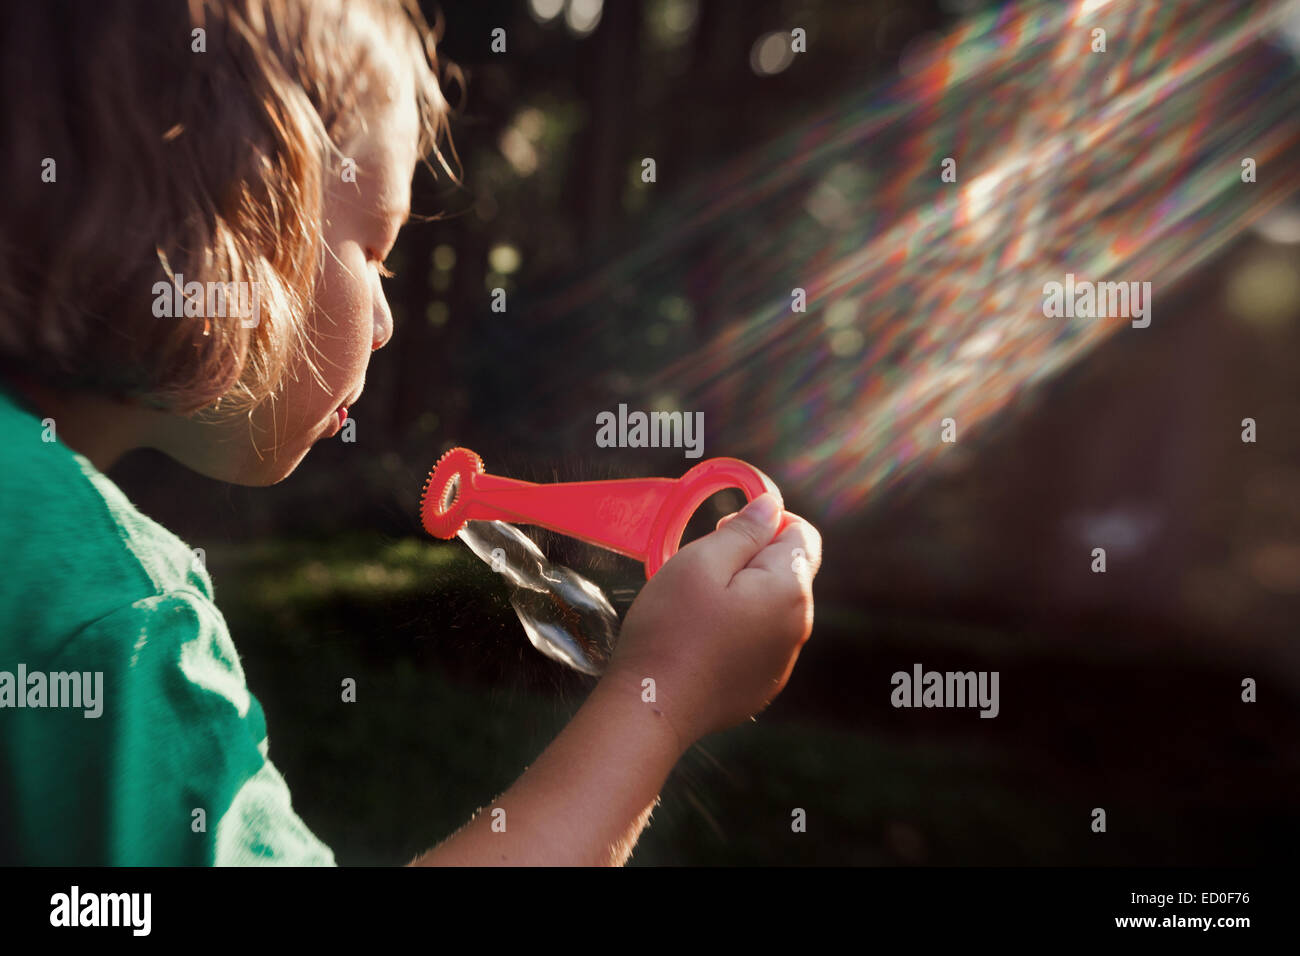 Girl (8-9) blowing bubbles Photo Stock